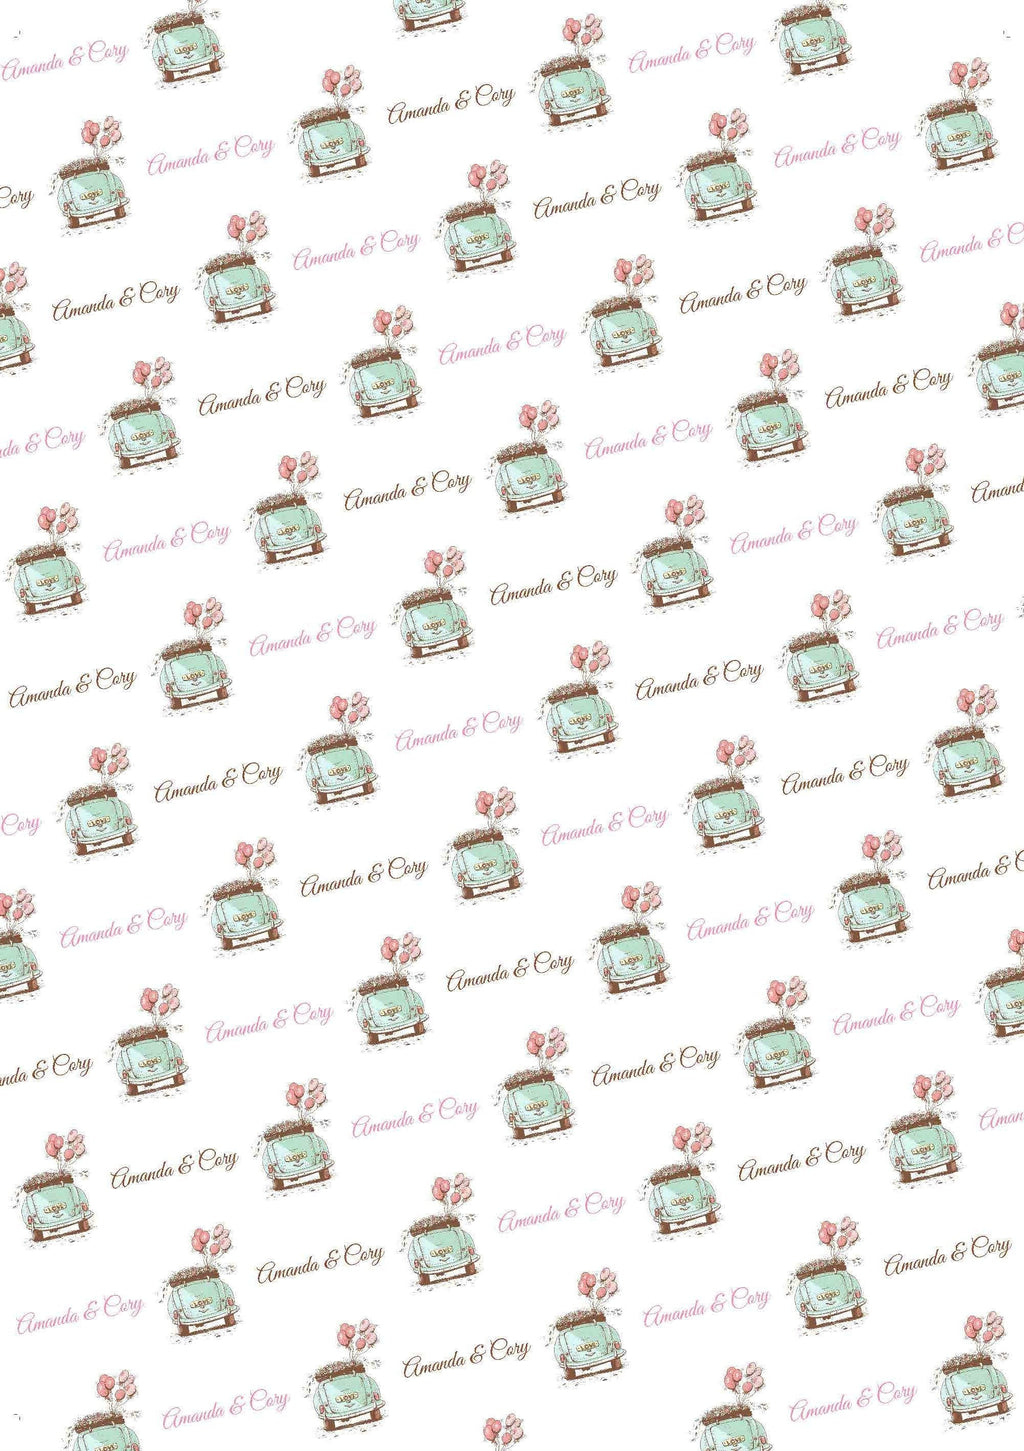 Wedding Car Personalized Gift Wrap - Potter's Printing